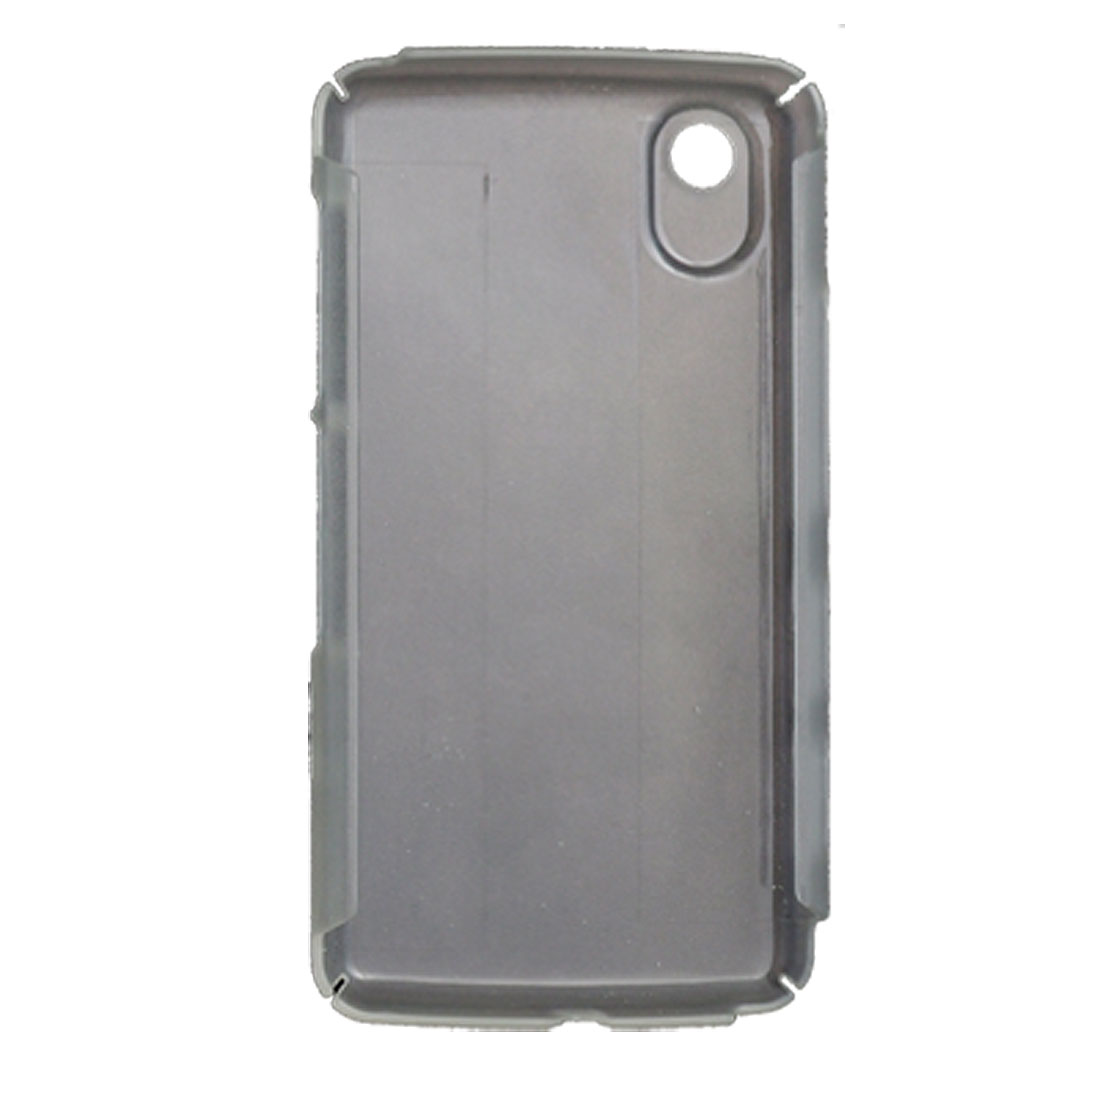 Crystal Plastic Case for LG KP500